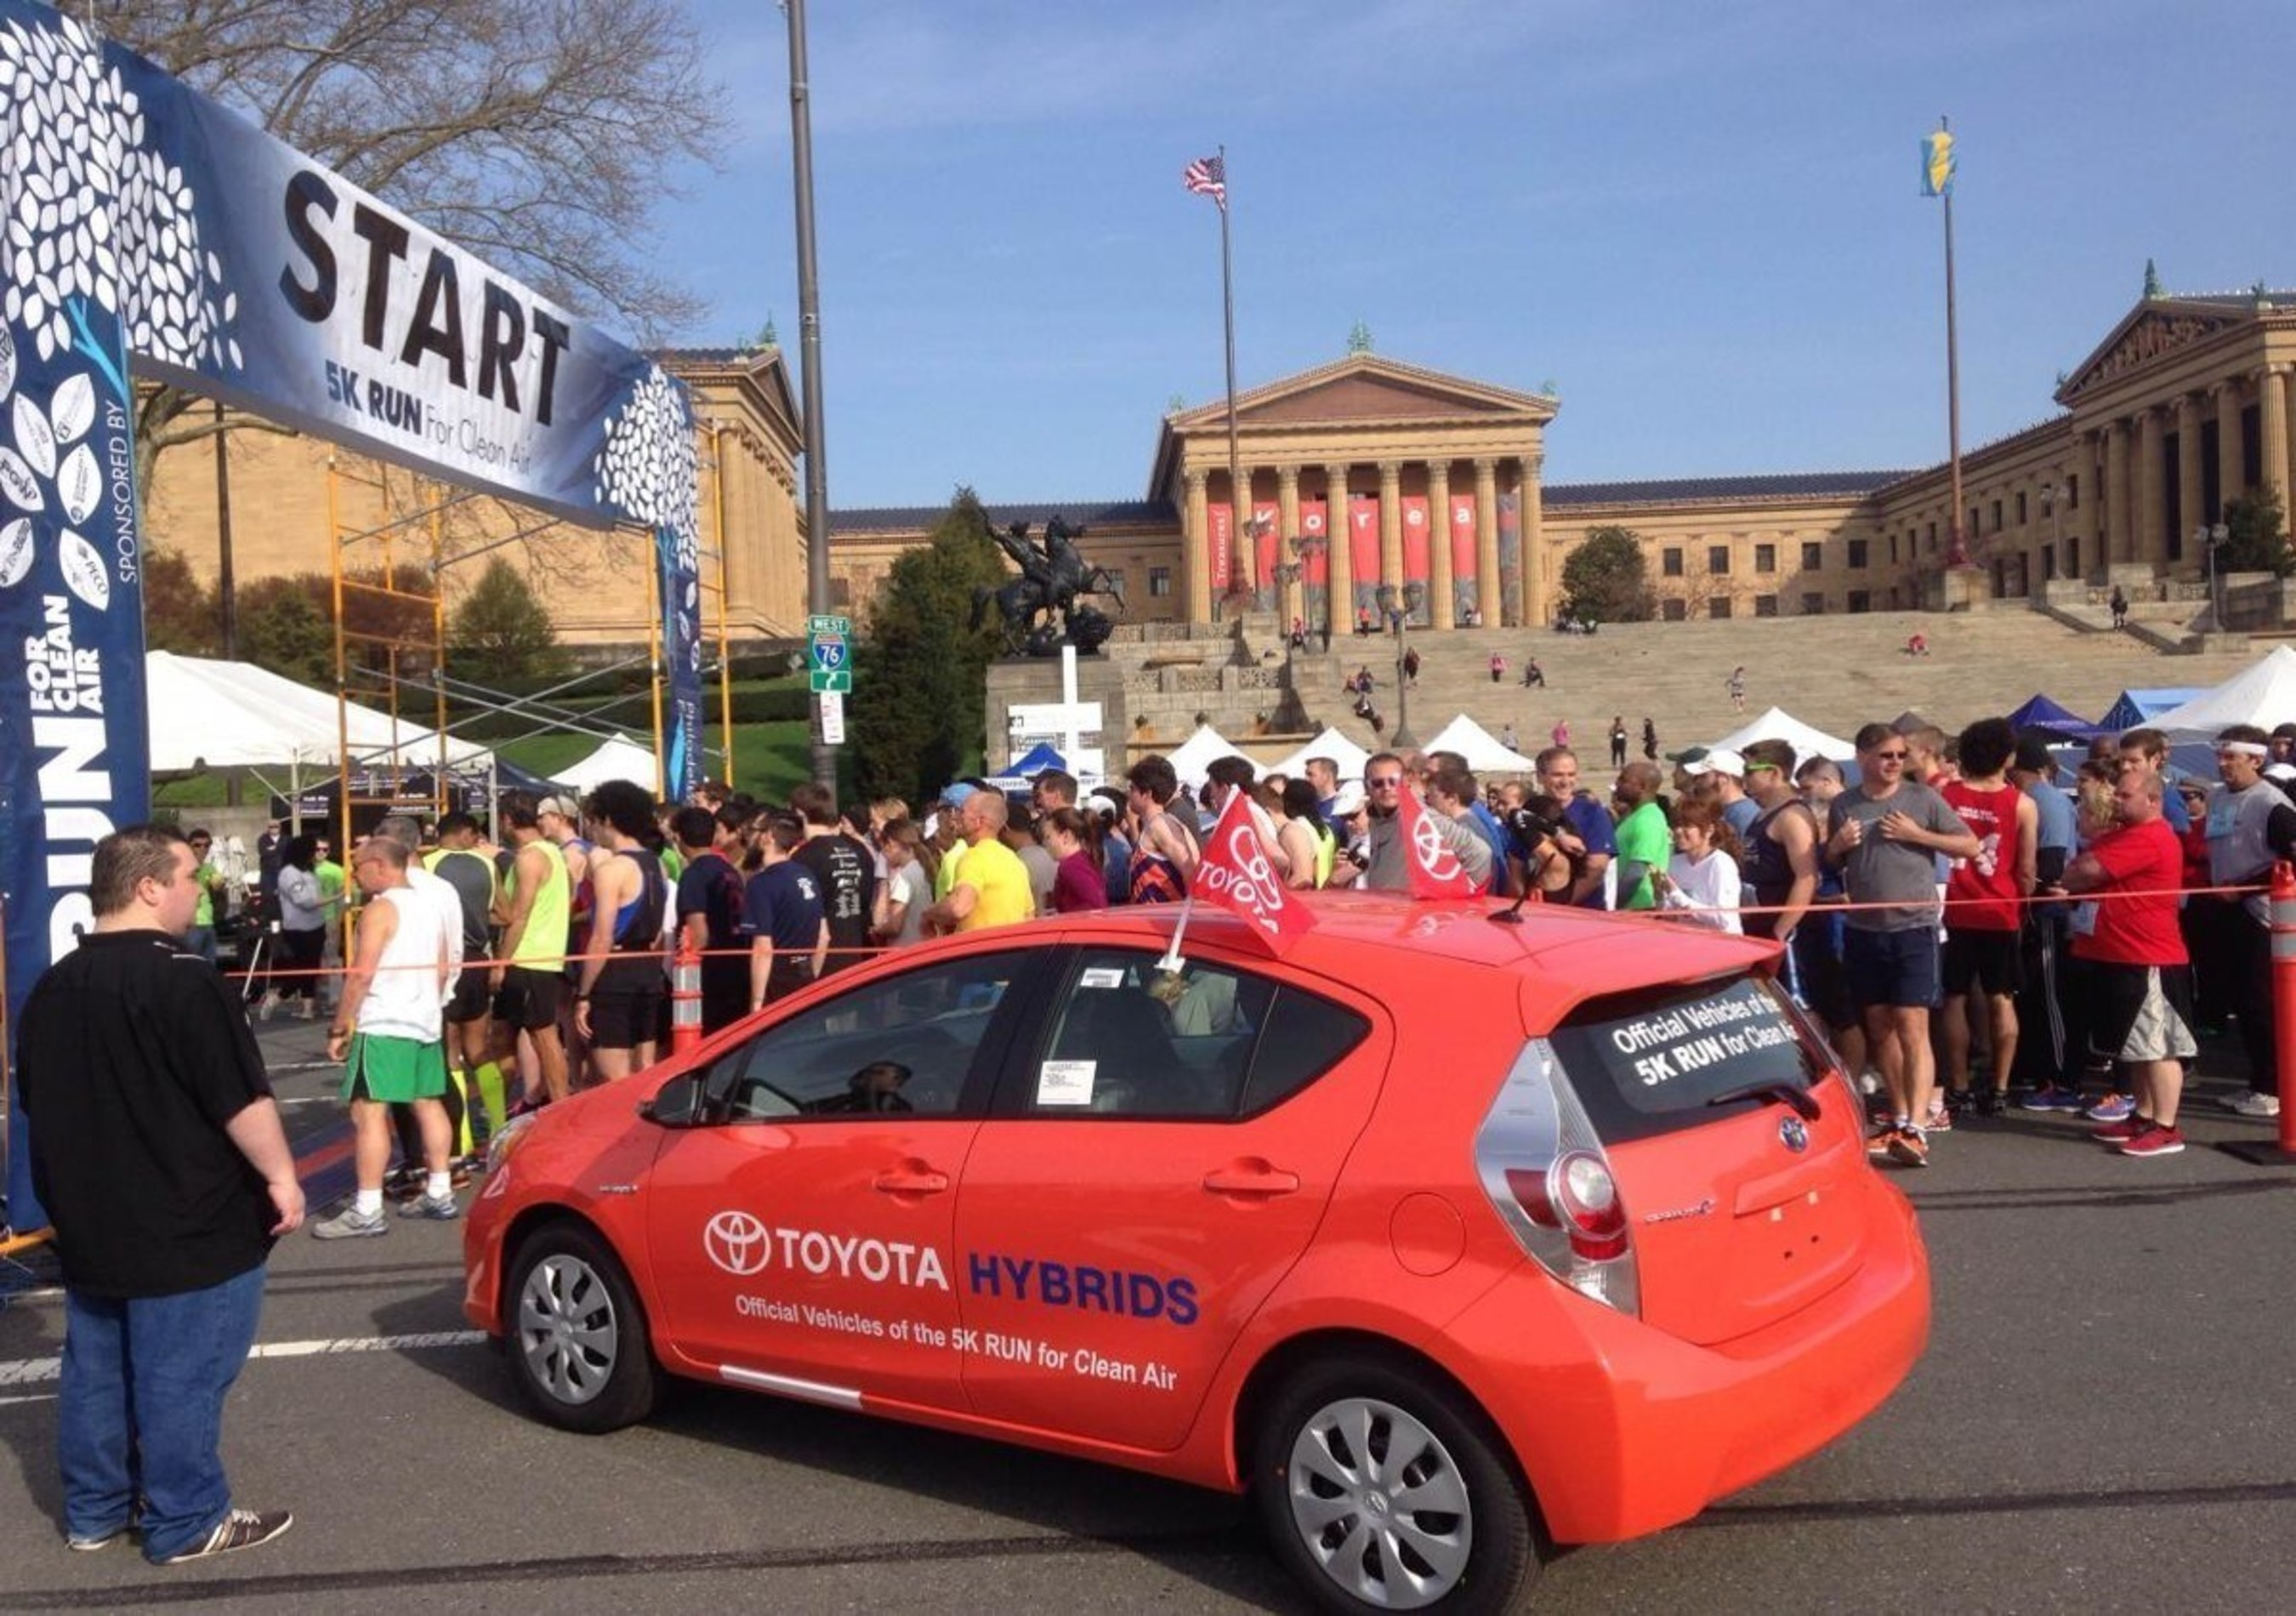 The Run for Clean Air presented by Toyota Hybrids kicks off Earth Week in Philadelphia. Prius pace vehicles lead the runners.